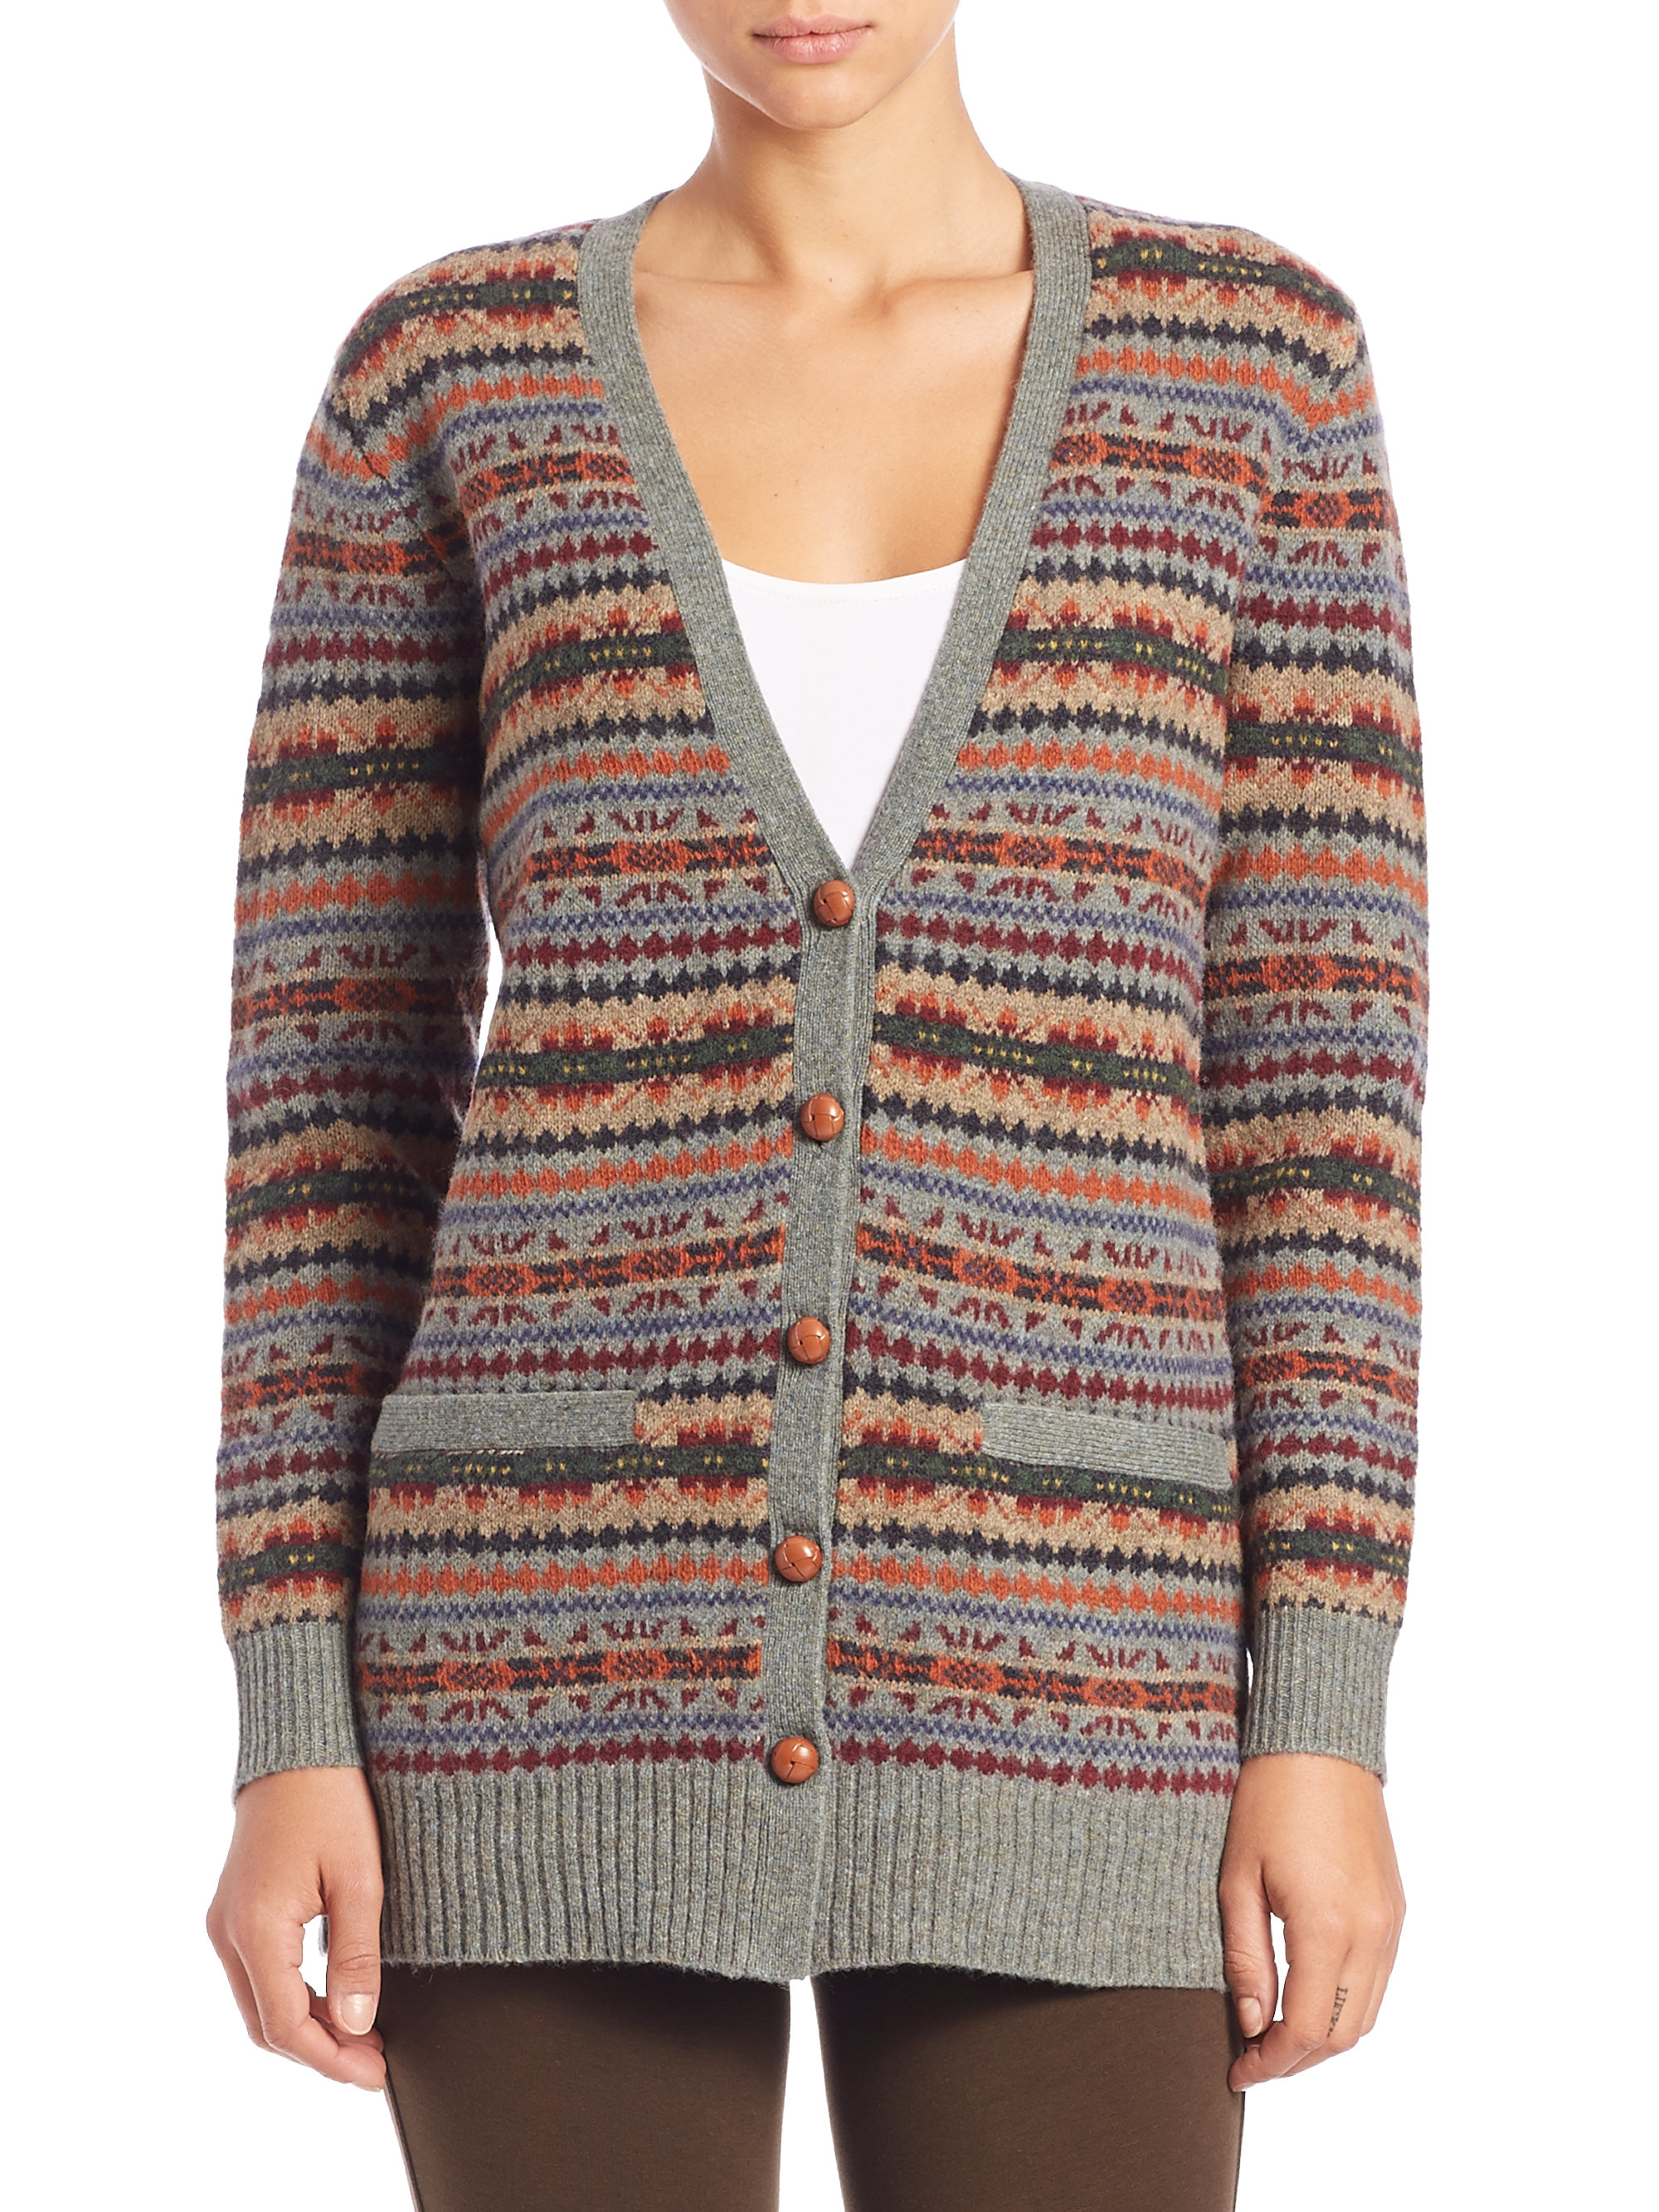 Polo ralph lauren Fair Isle Cardigan in Brown | Lyst